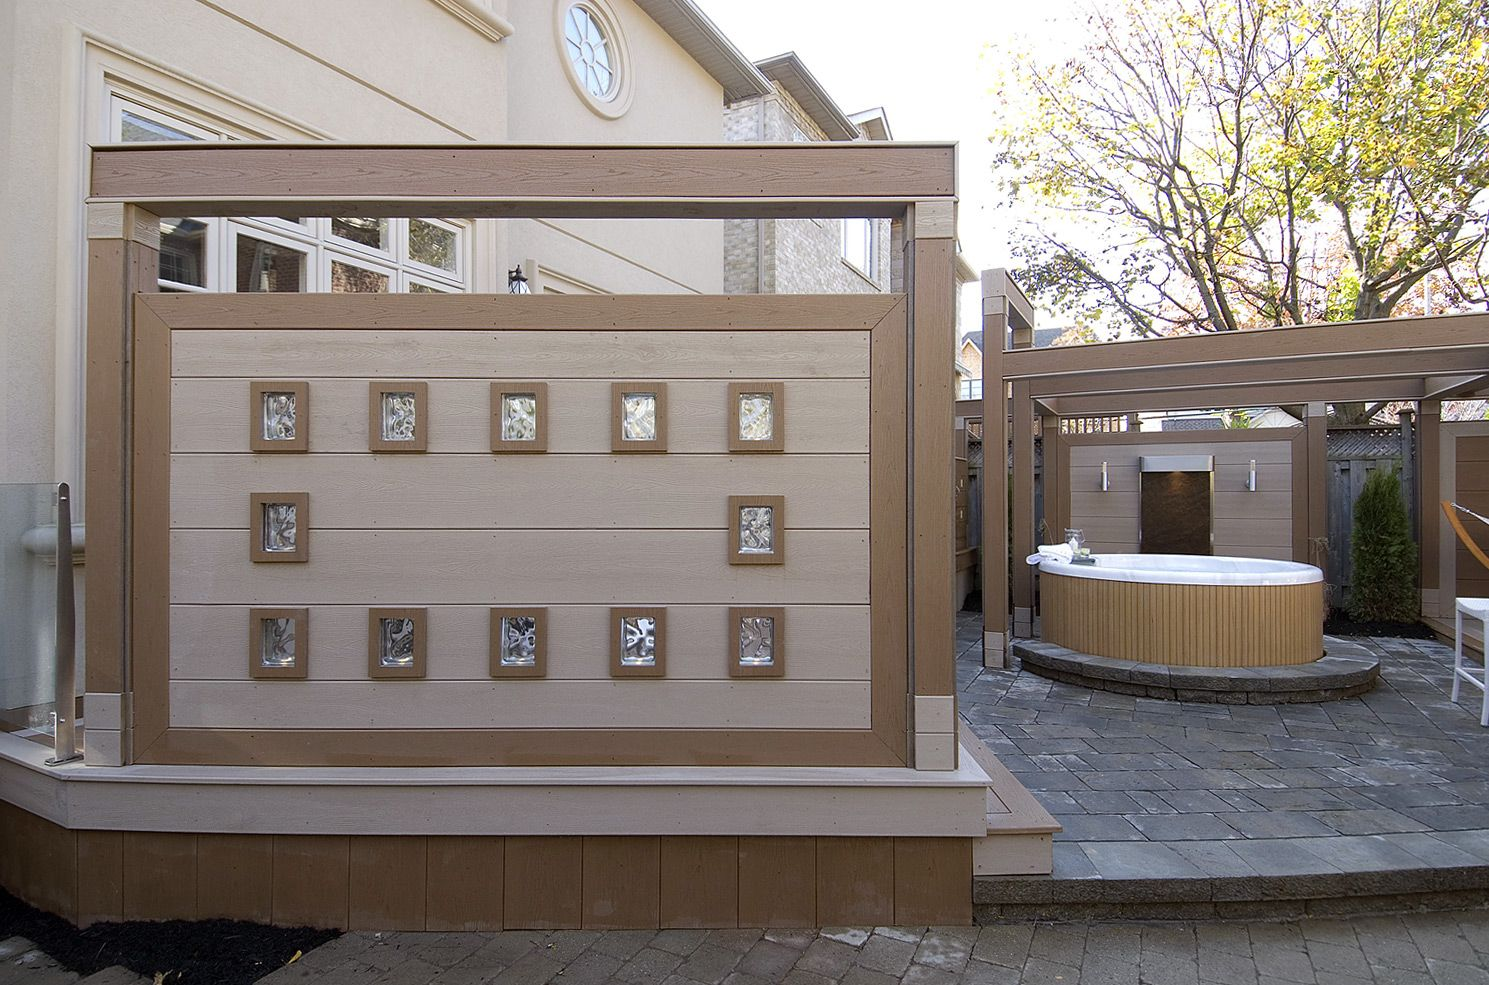 """We set off this privacy screen with some cool glass inserts.  From """"Decked Out"""" project """"The Clock Deck"""".  Deck Design by Paul Lafrance Design."""